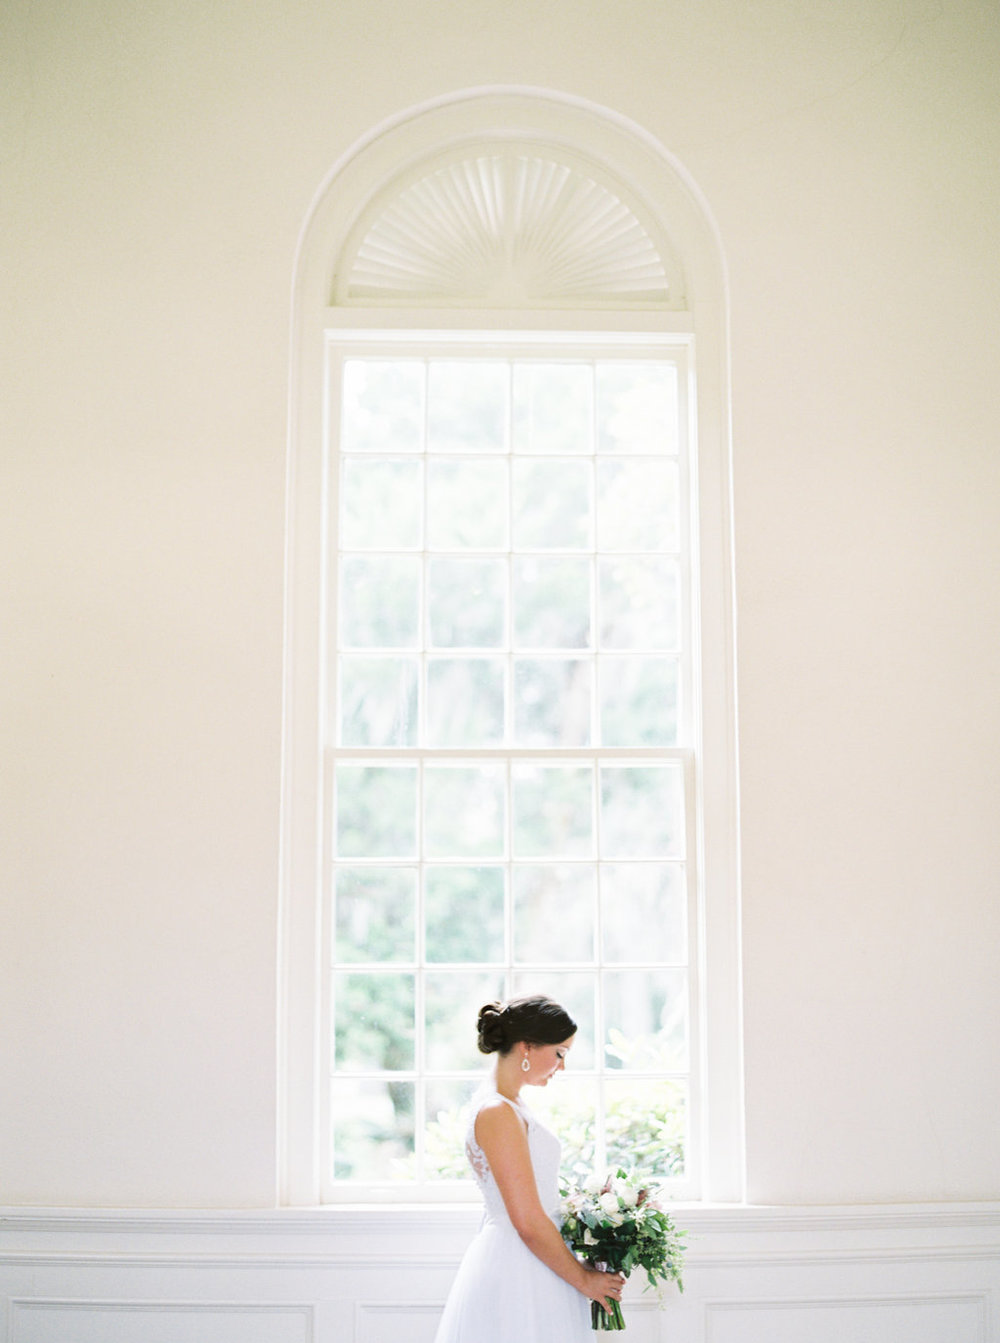 the-happy-bloom-photography-ivory-and-beau-wedding-planning-ivory-and-beau-bridal-boutique-whitfield-chapel-wedding-10-downing-wedding-savannah-wedding-historic-savannah-wedding-savannah-wedding-planner-savannah-weddings-a-to-zinnias-14.jpg